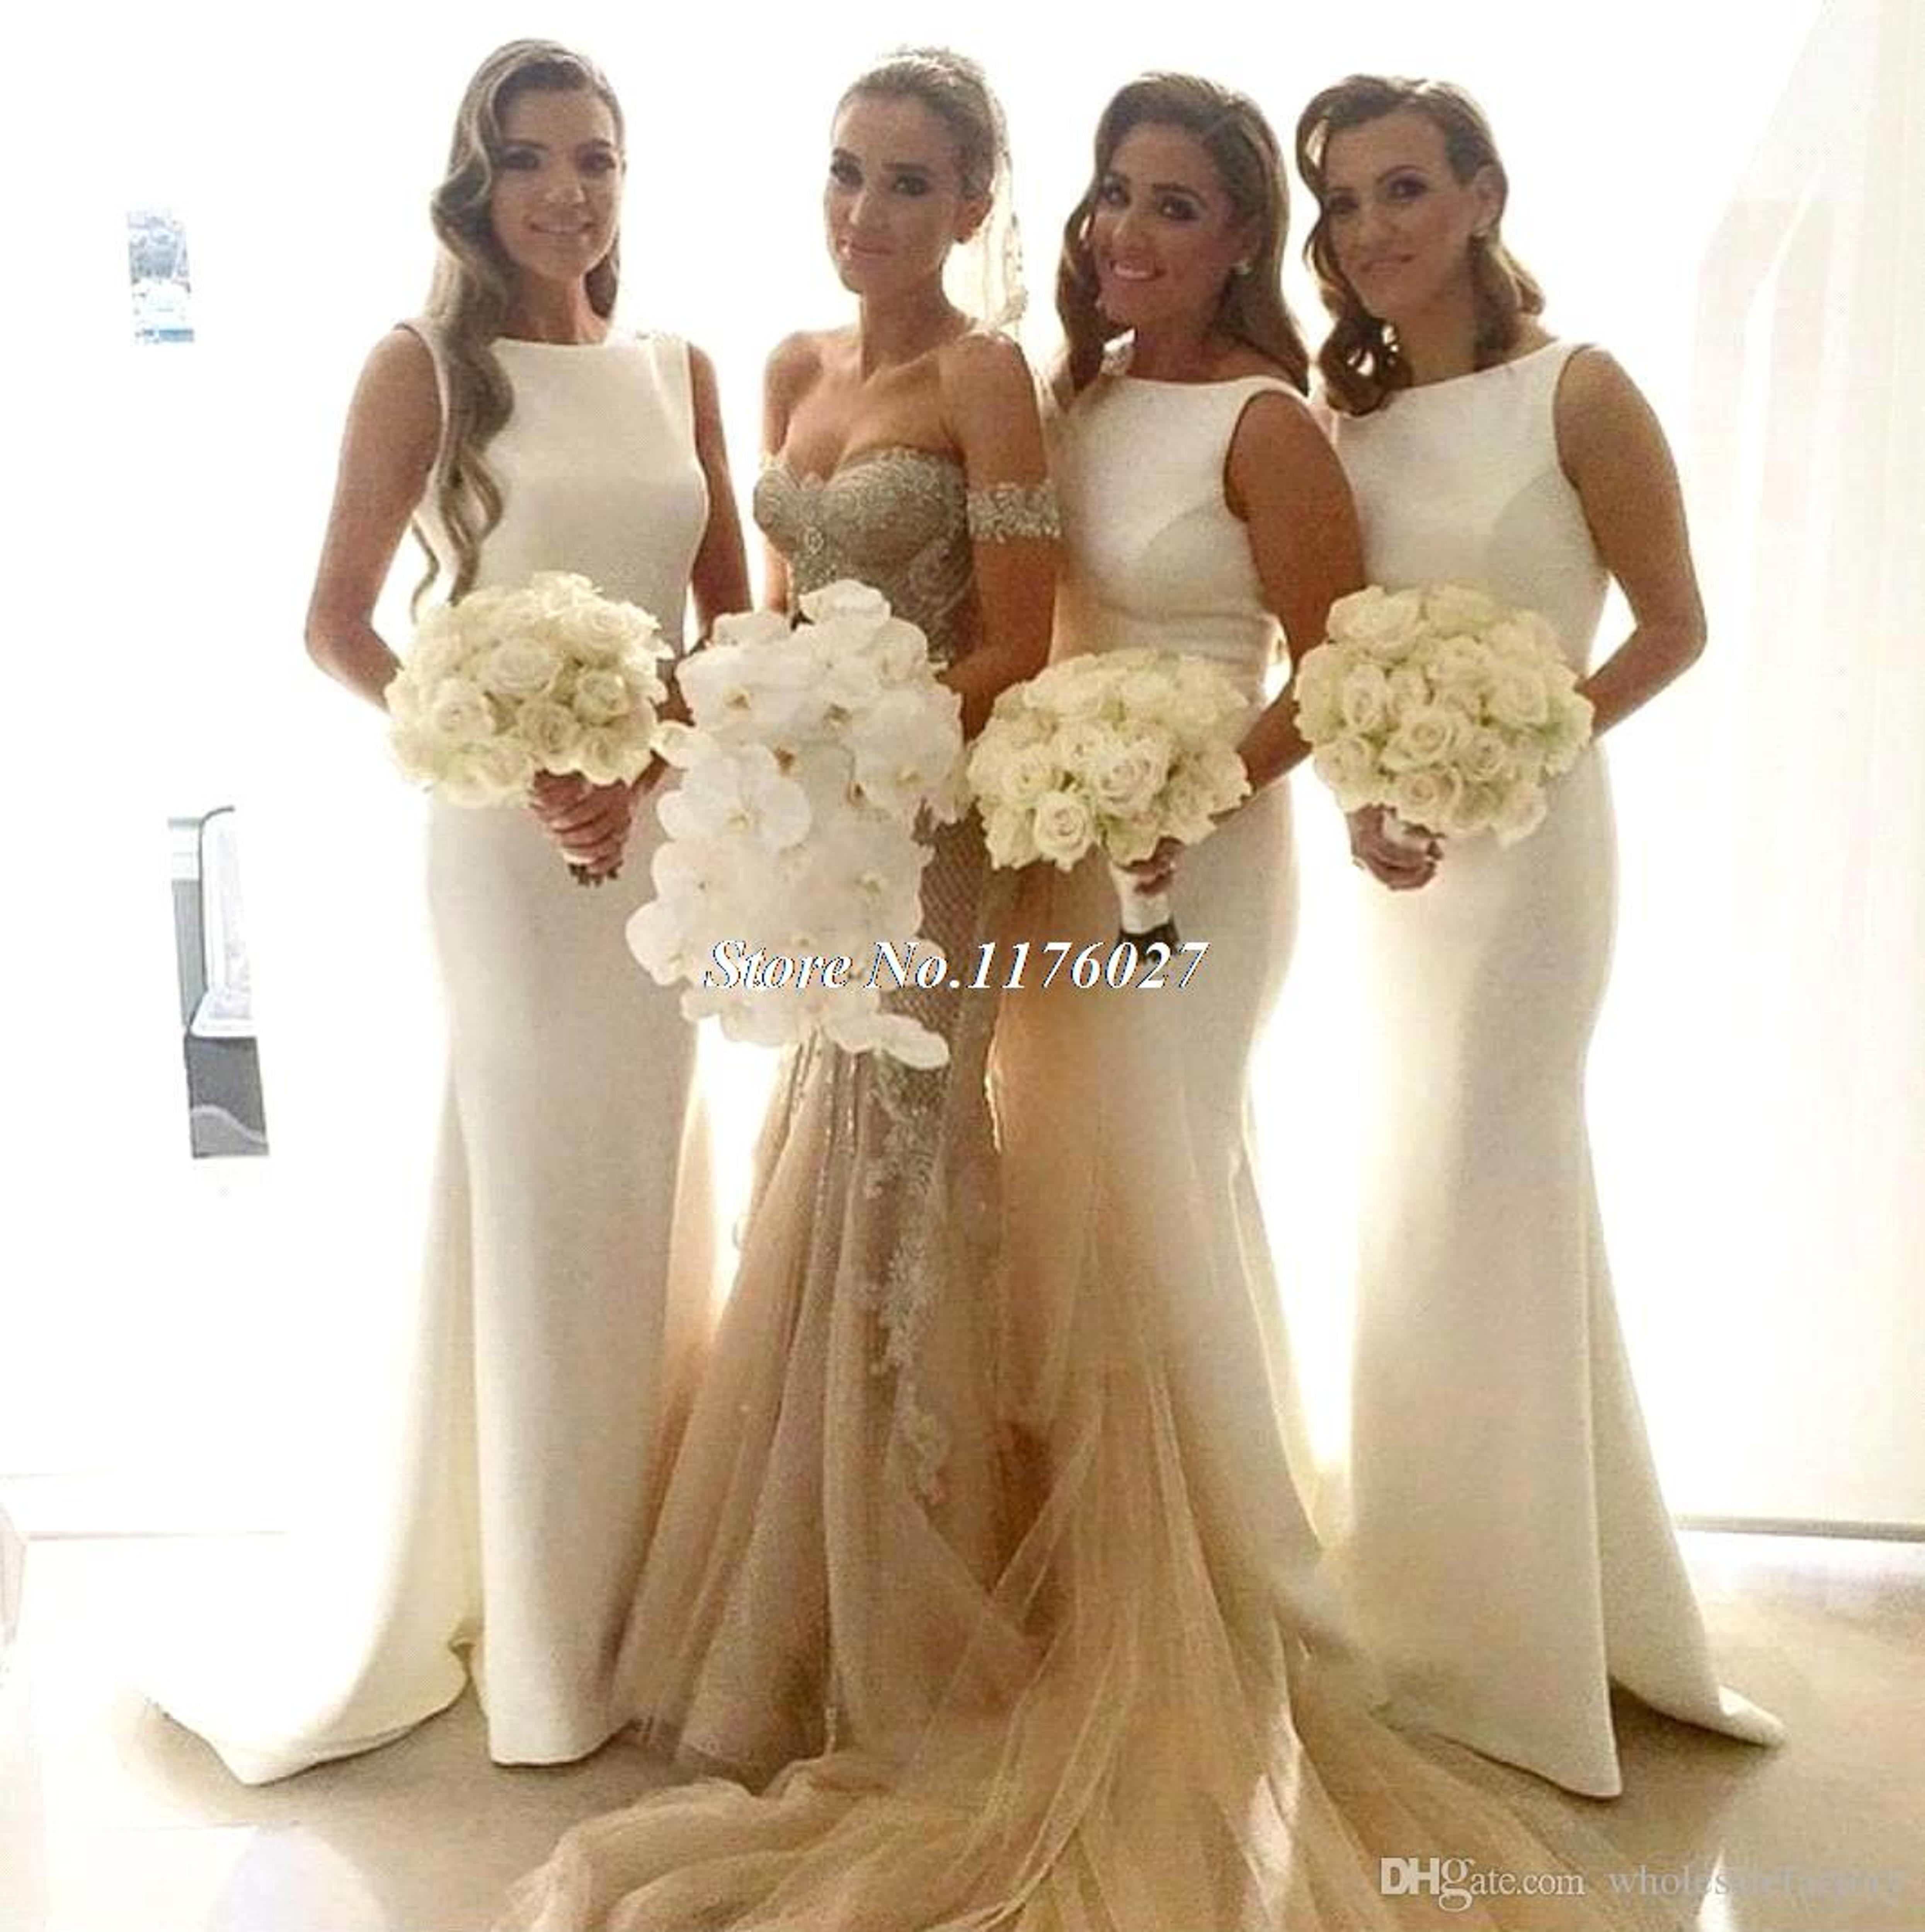 2016 New Arrival Satin Mermaid Bridesmaid Dresses Sleeveless Wedding Party Gowns Long Cheap Bridesmaids Maid Of Honor Gowns FF76